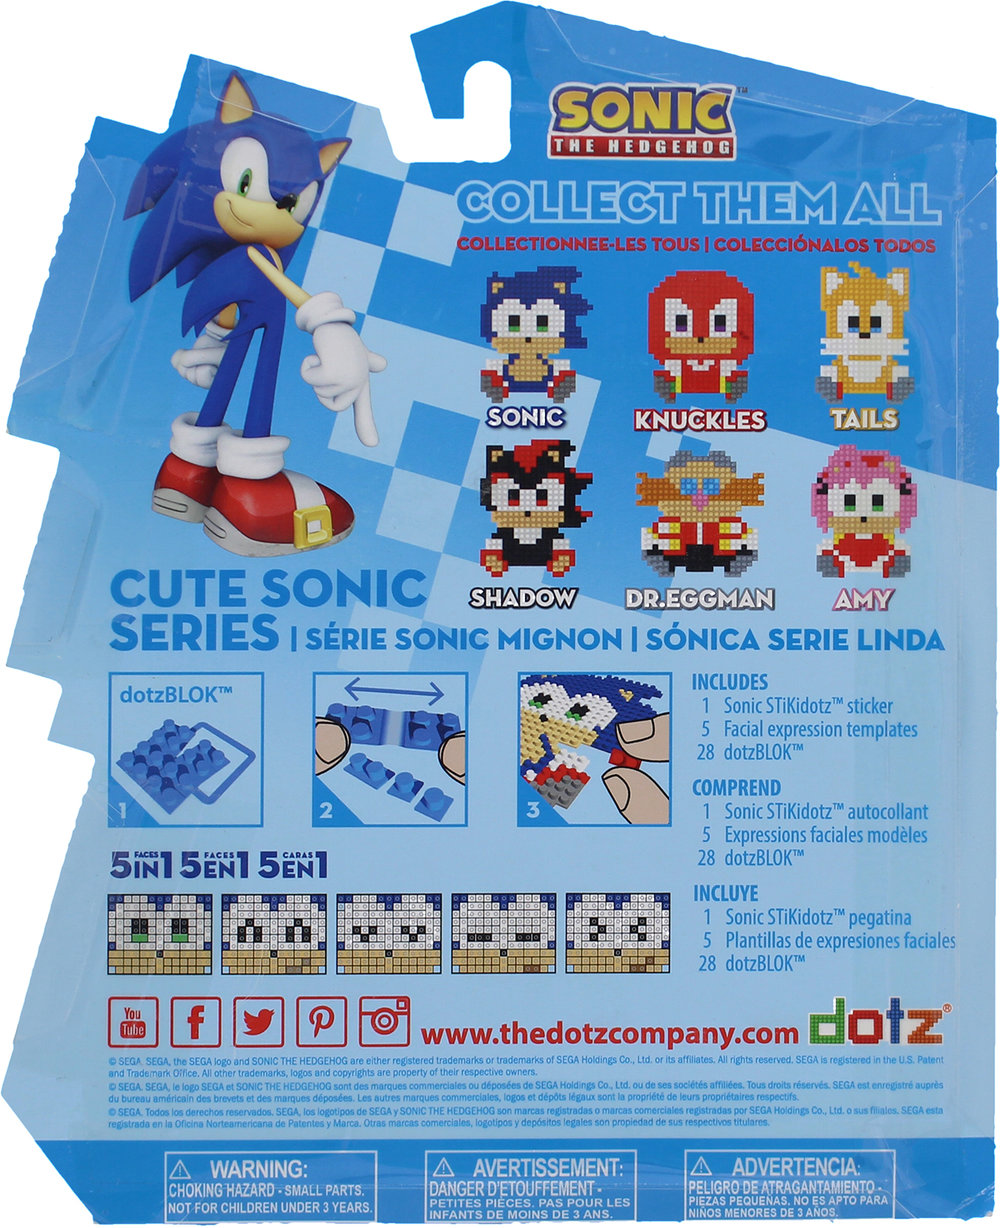 Back of Cute Sonic Box